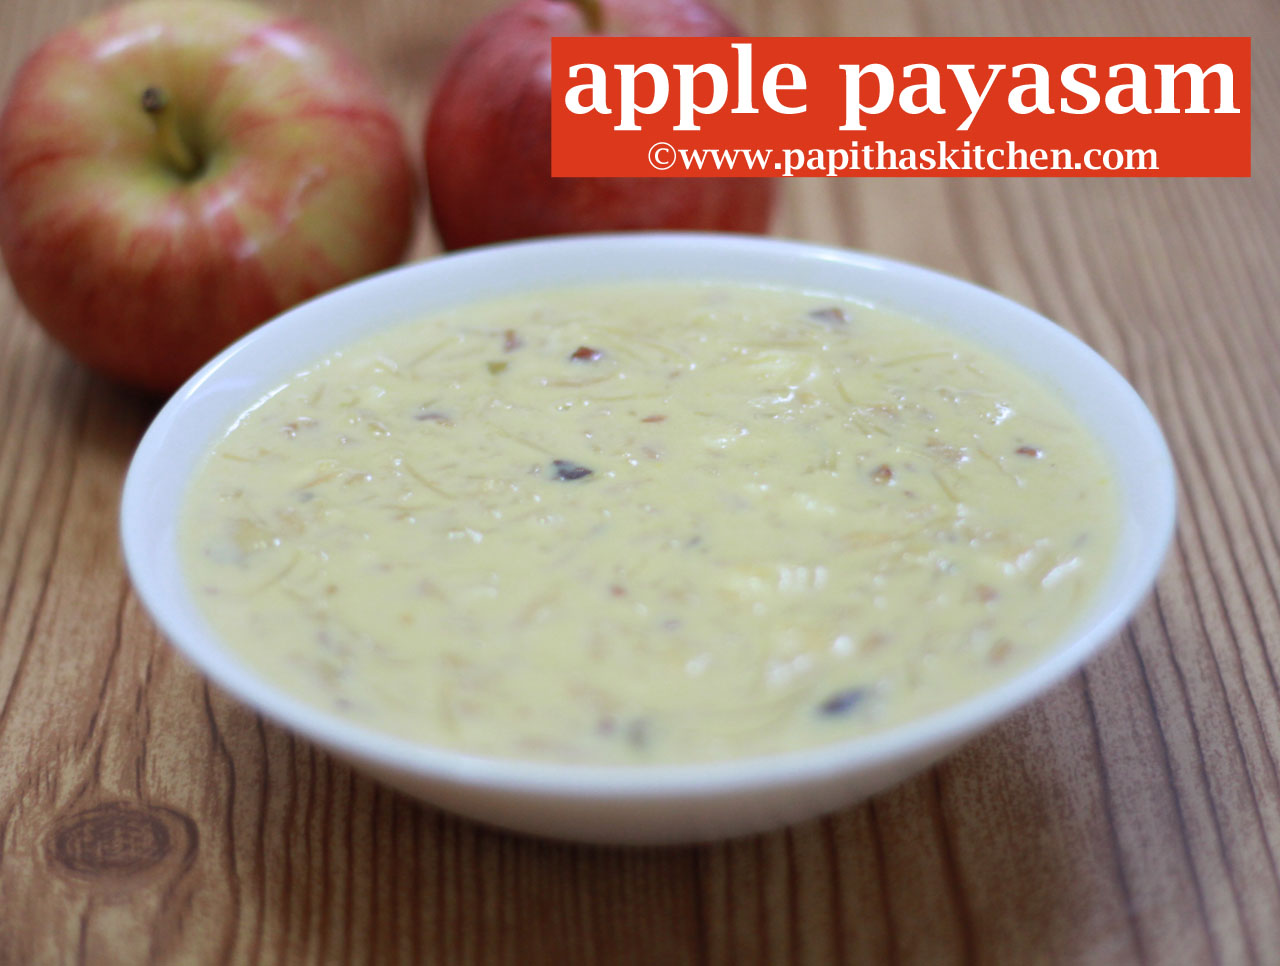 Apple payasam